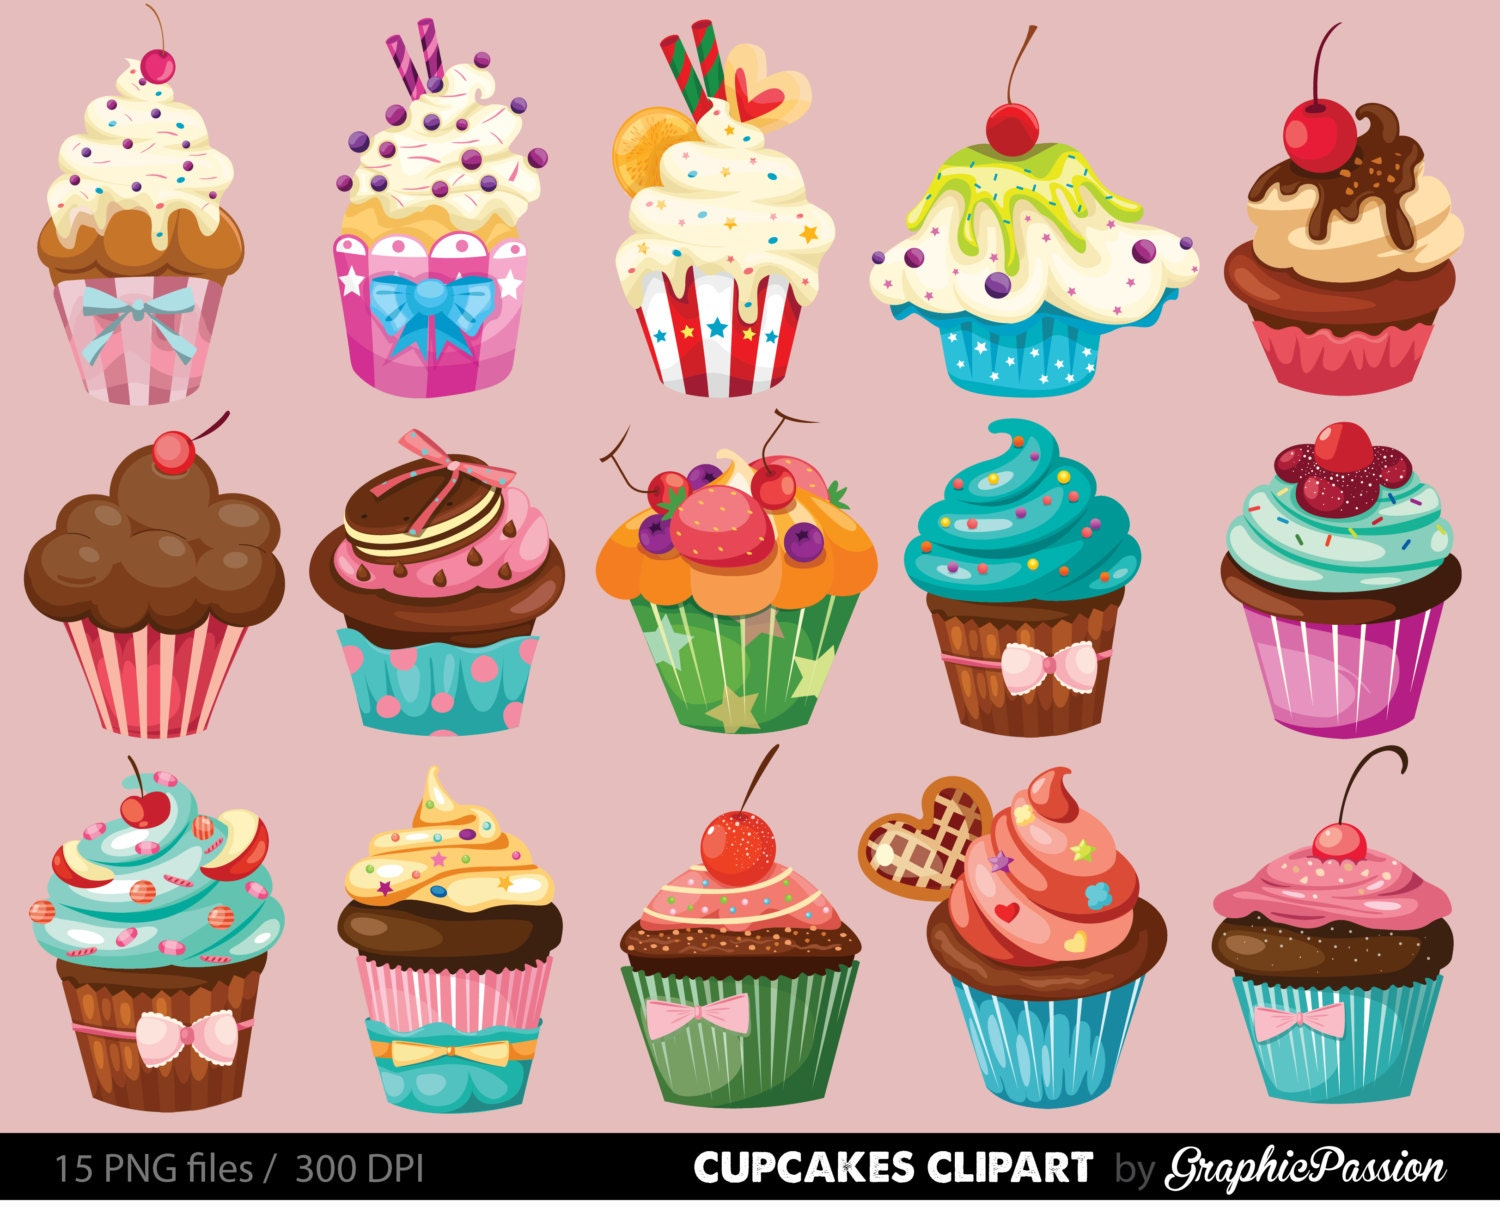 Cupcakes clipart digital cupcake clip art cupcake digital